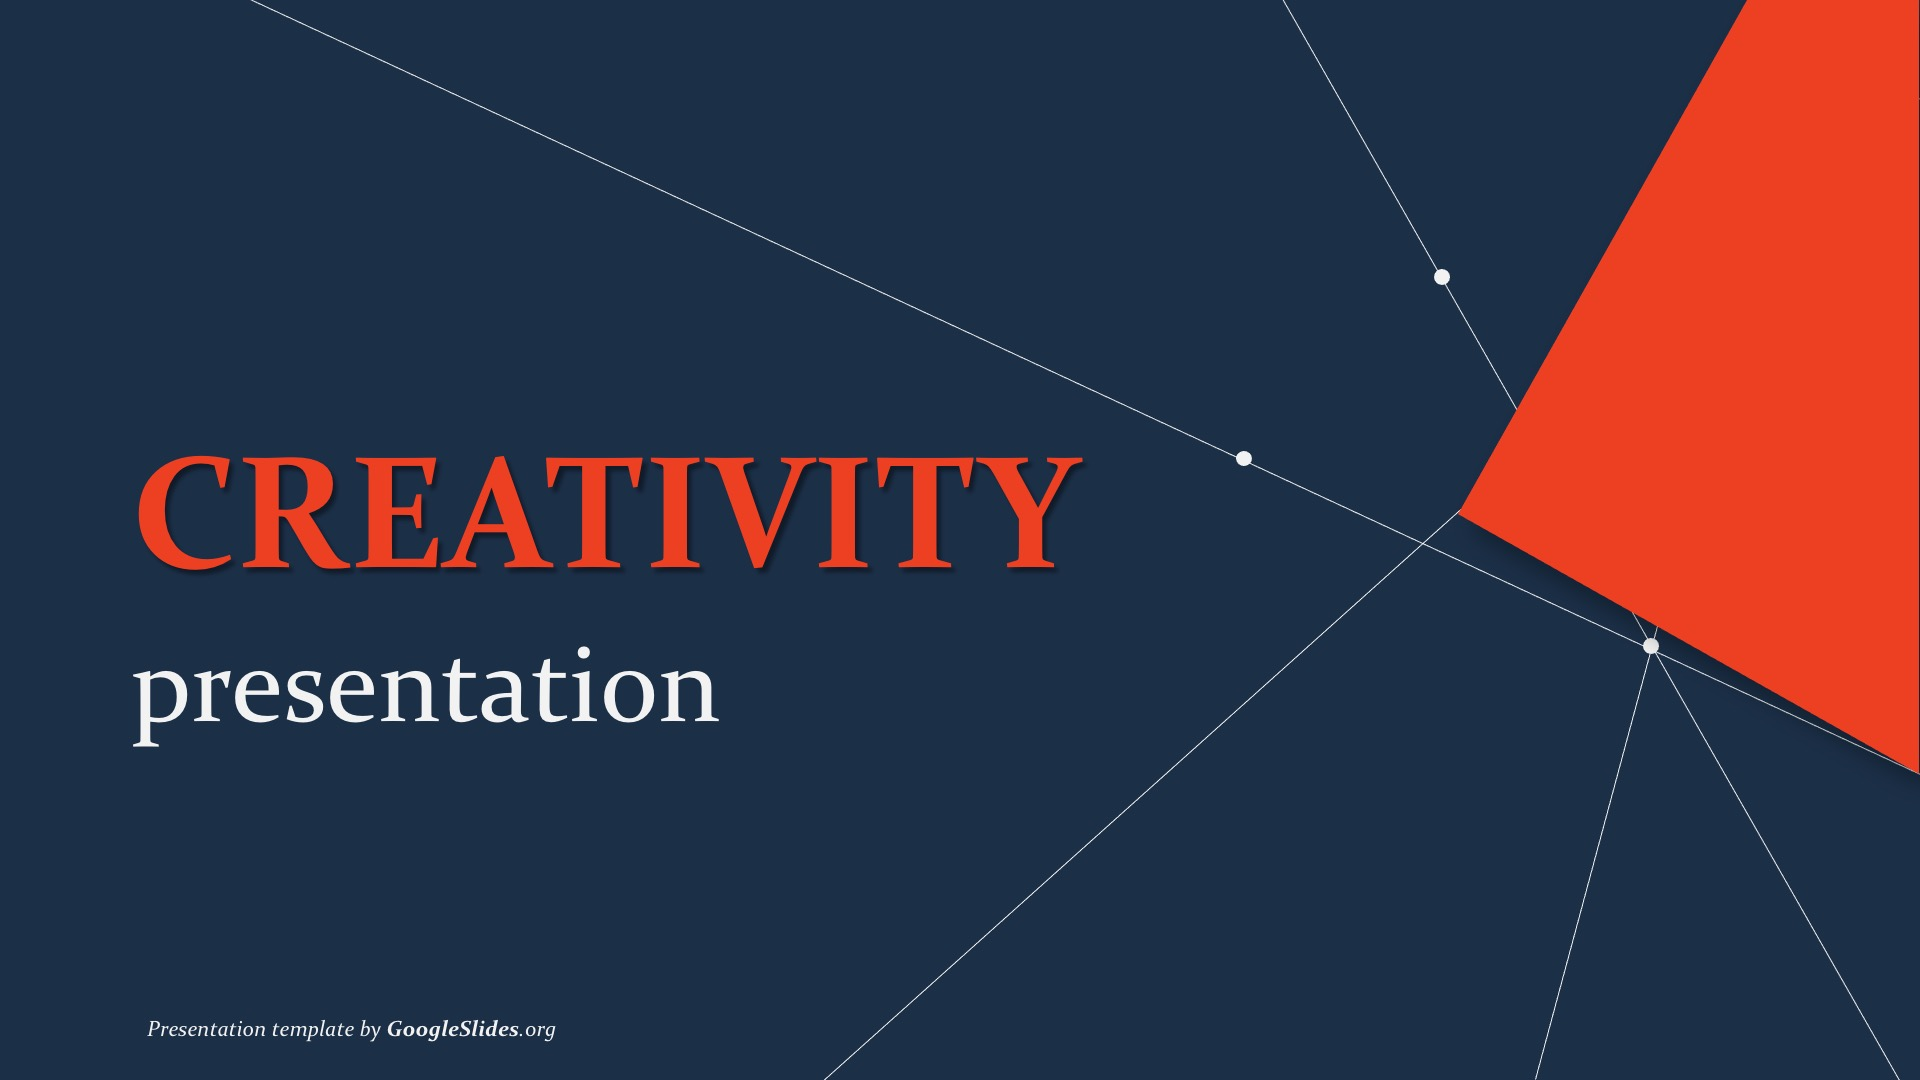 Creativity Presentation template